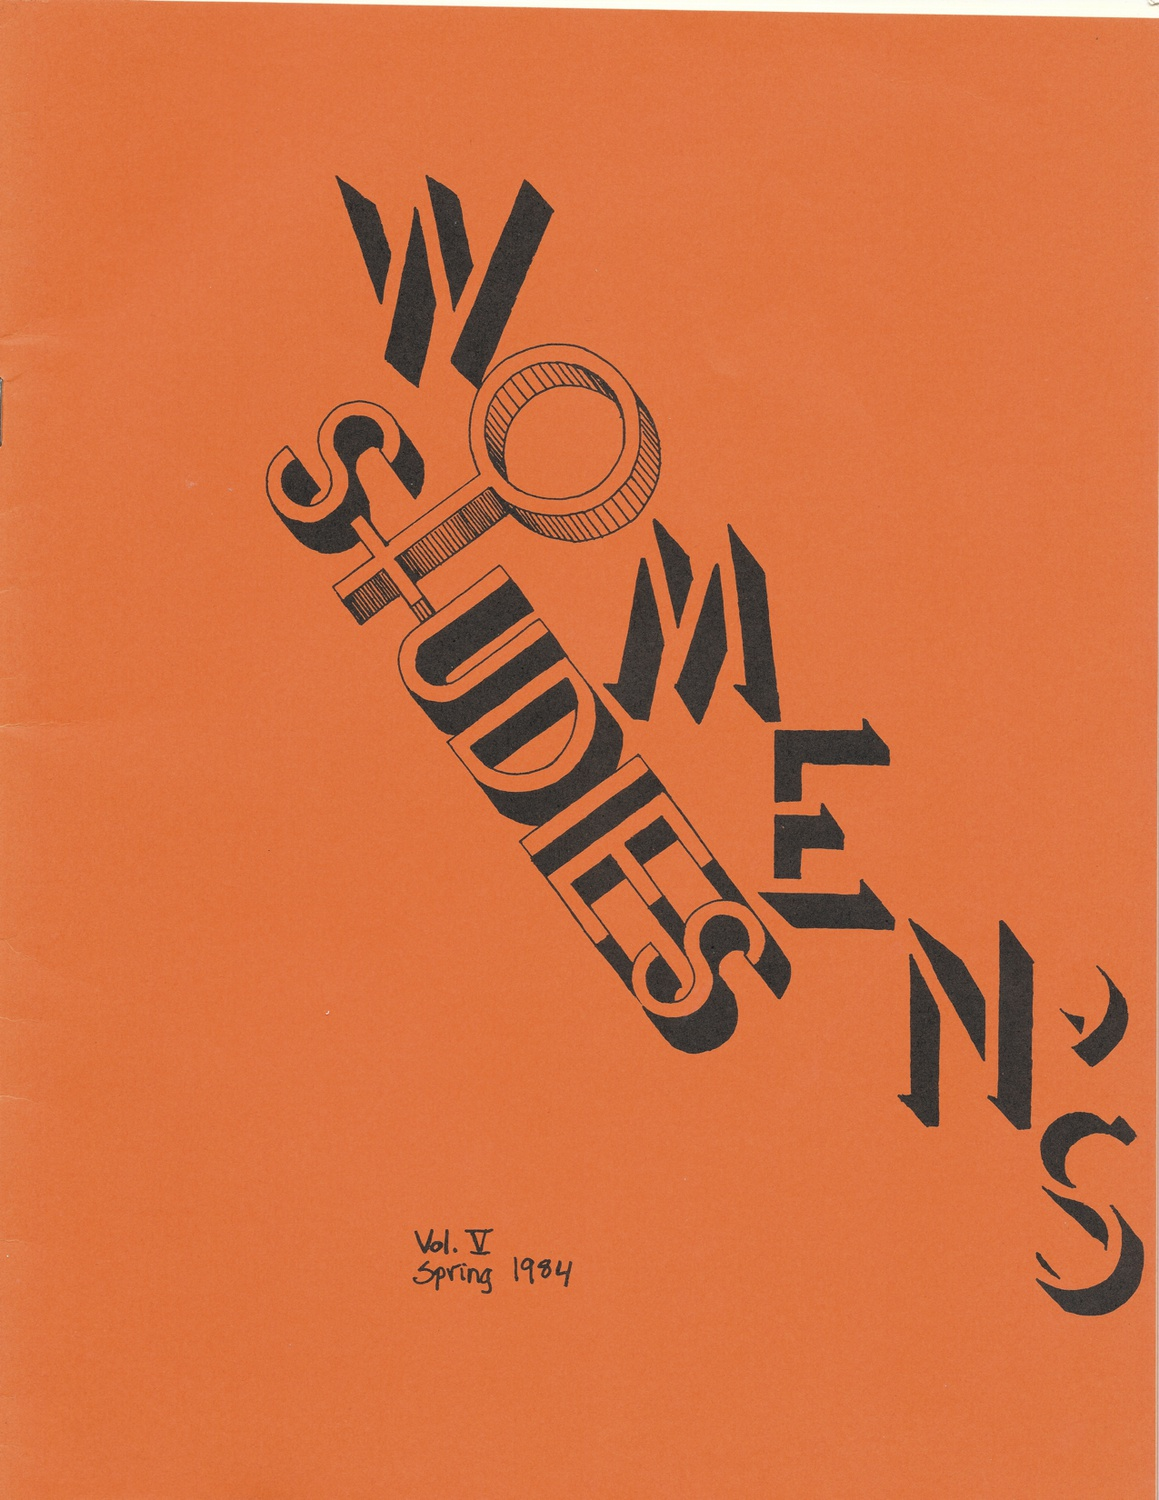 Course catalogues, created by the Radcliffe Union of Students in the early 1980s, were part of their advocacy for more women's studies offerings.